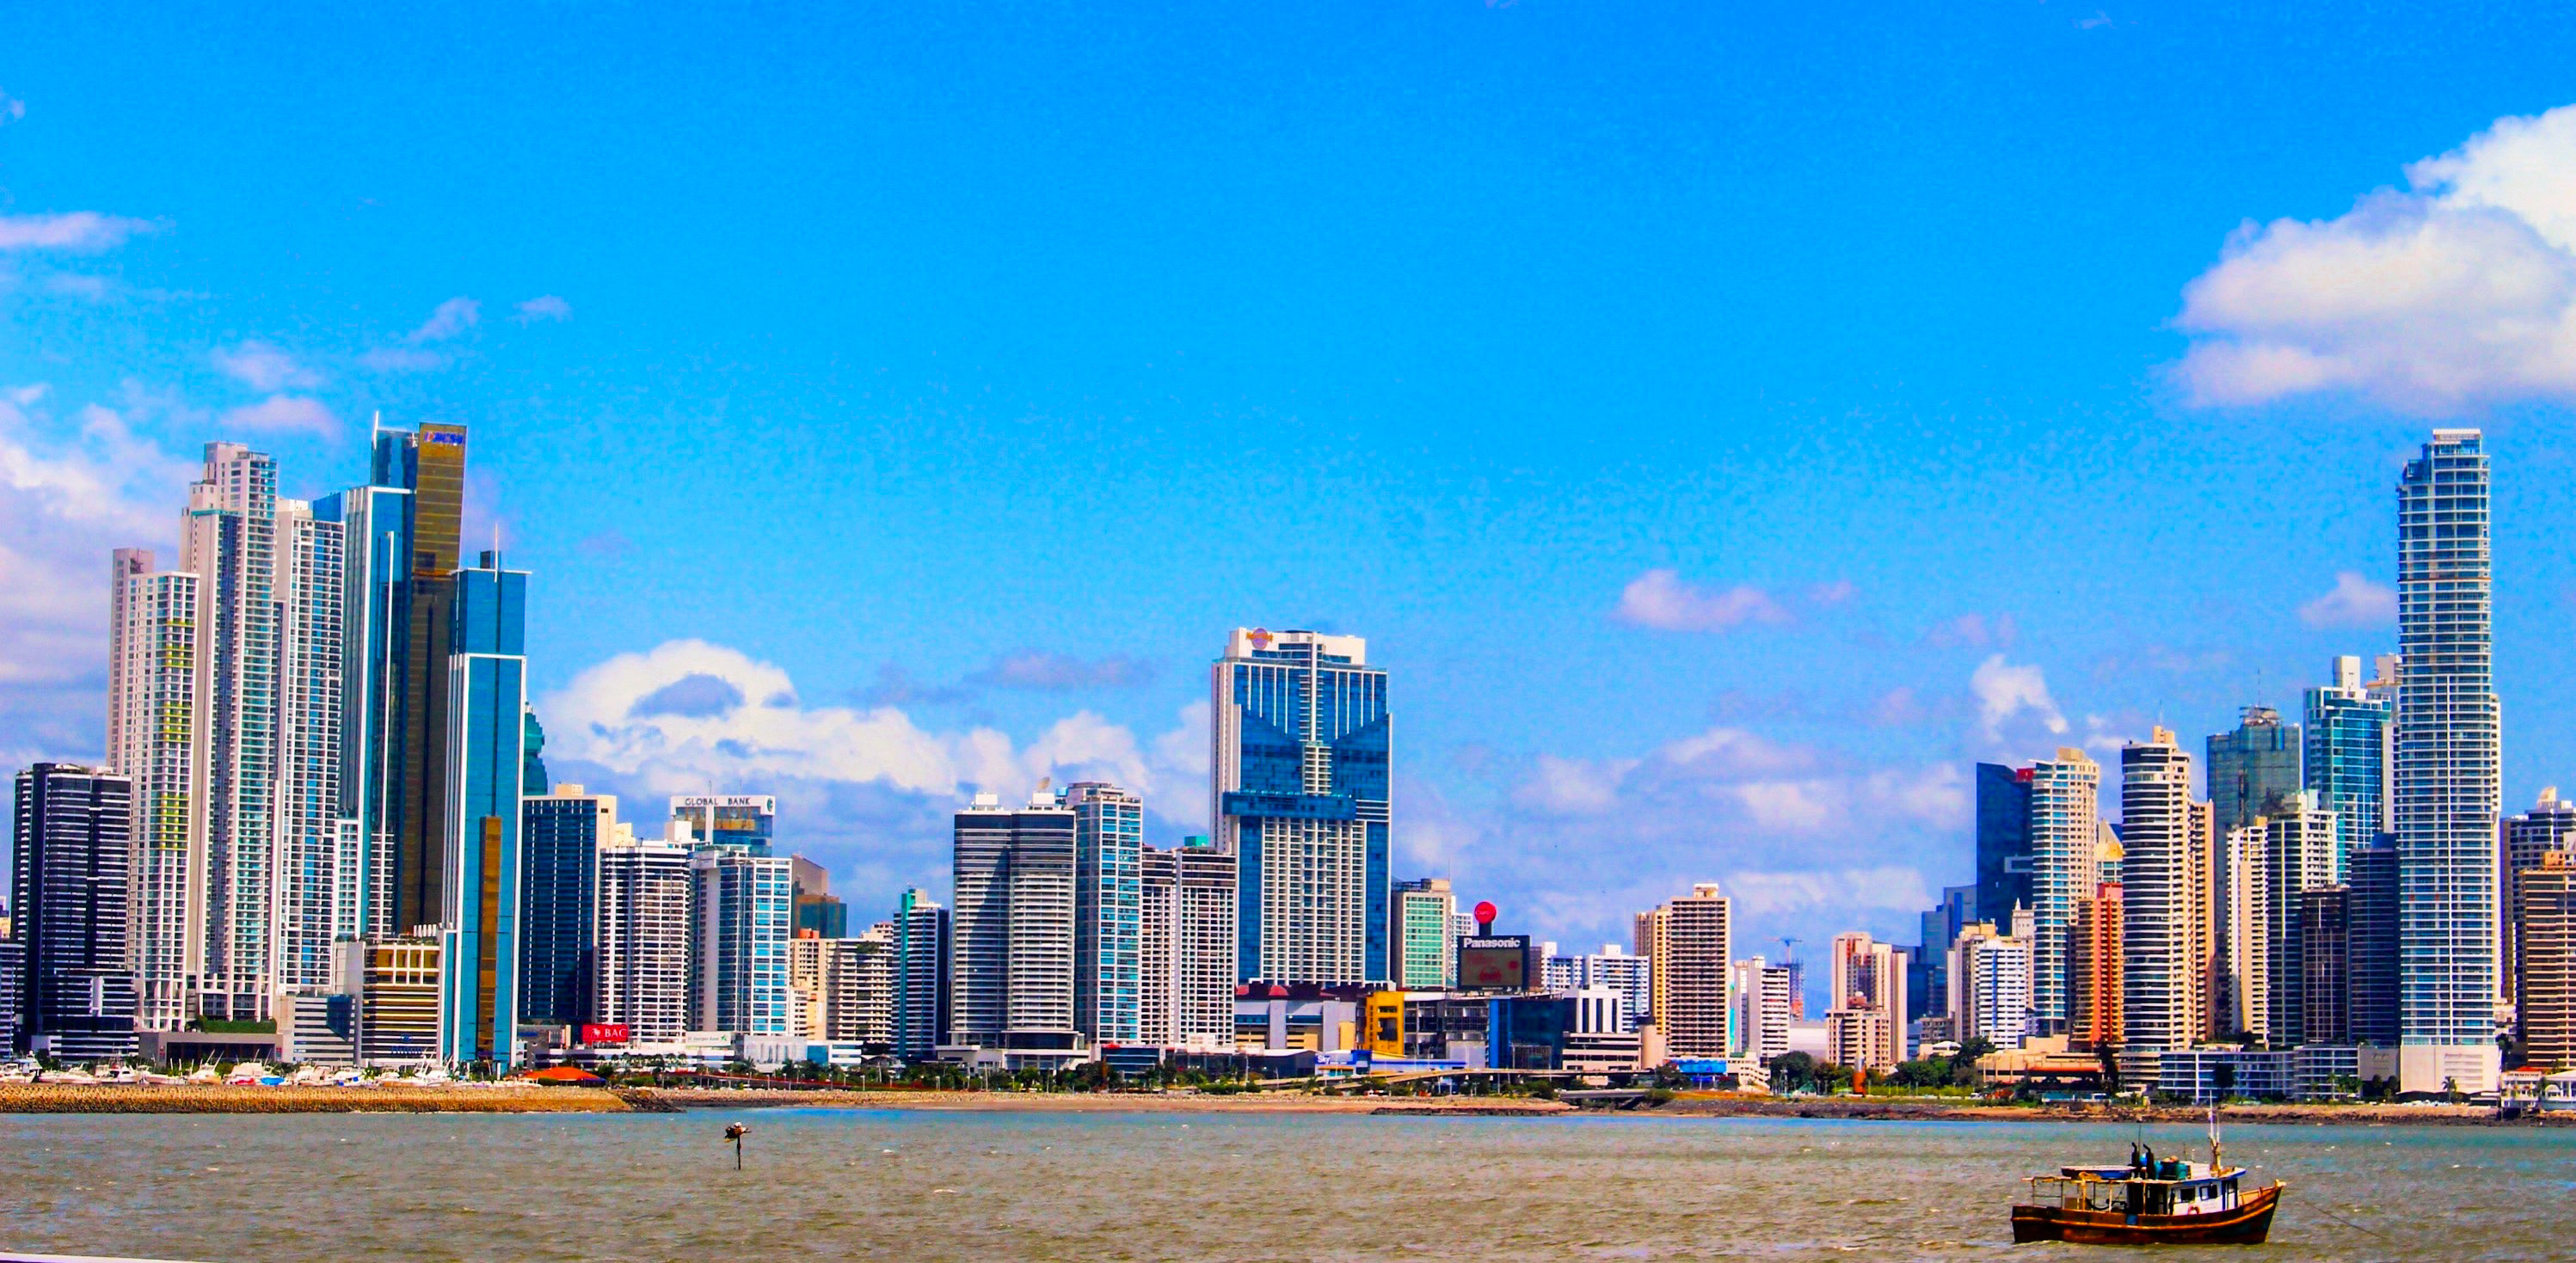 List of tallest buildings in Panama City - Wikipedia